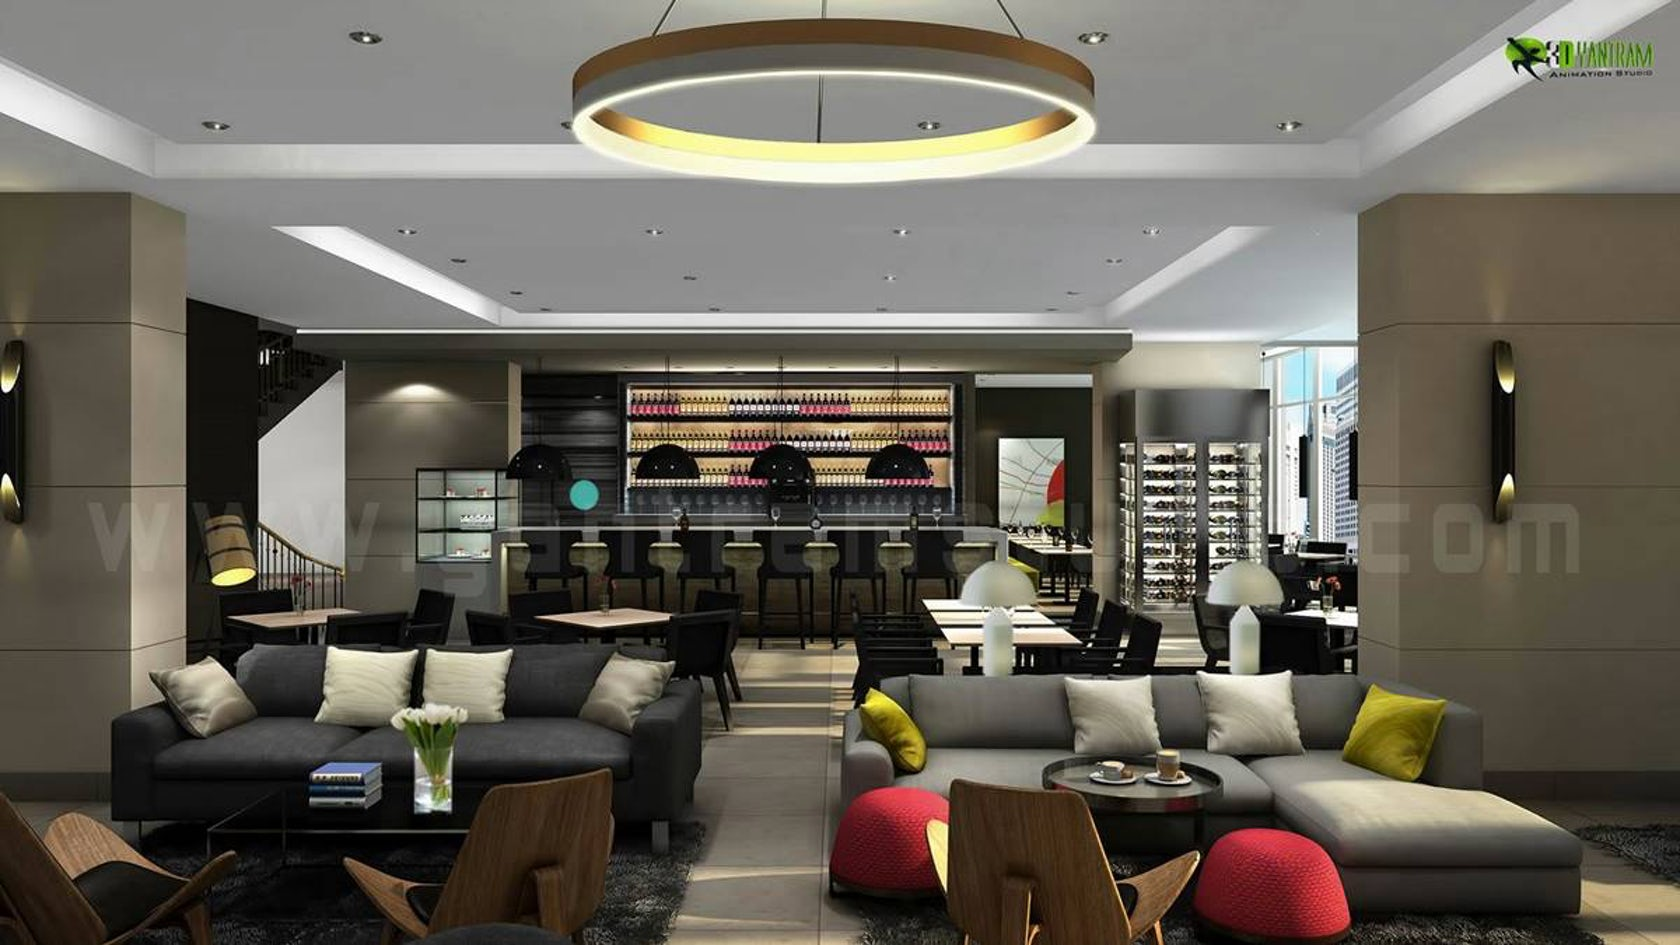 Glamorous living d hotel bar interior design view